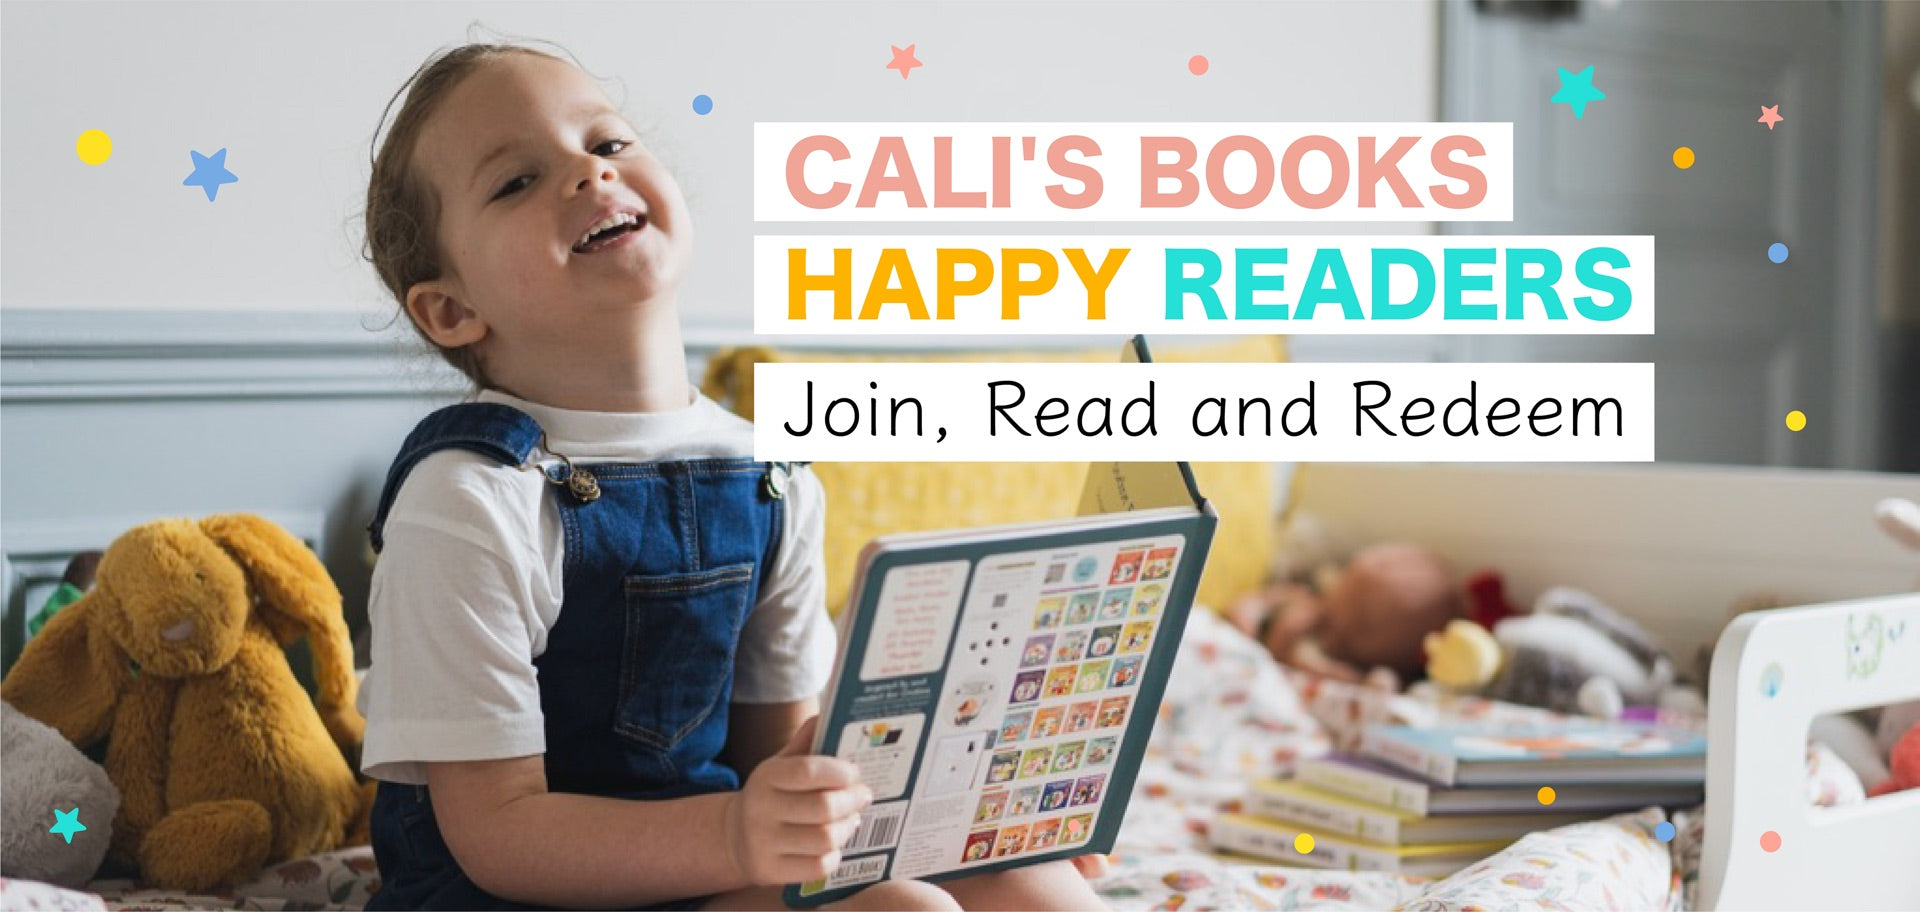 Cali's Books Happy Readers Rewards Program